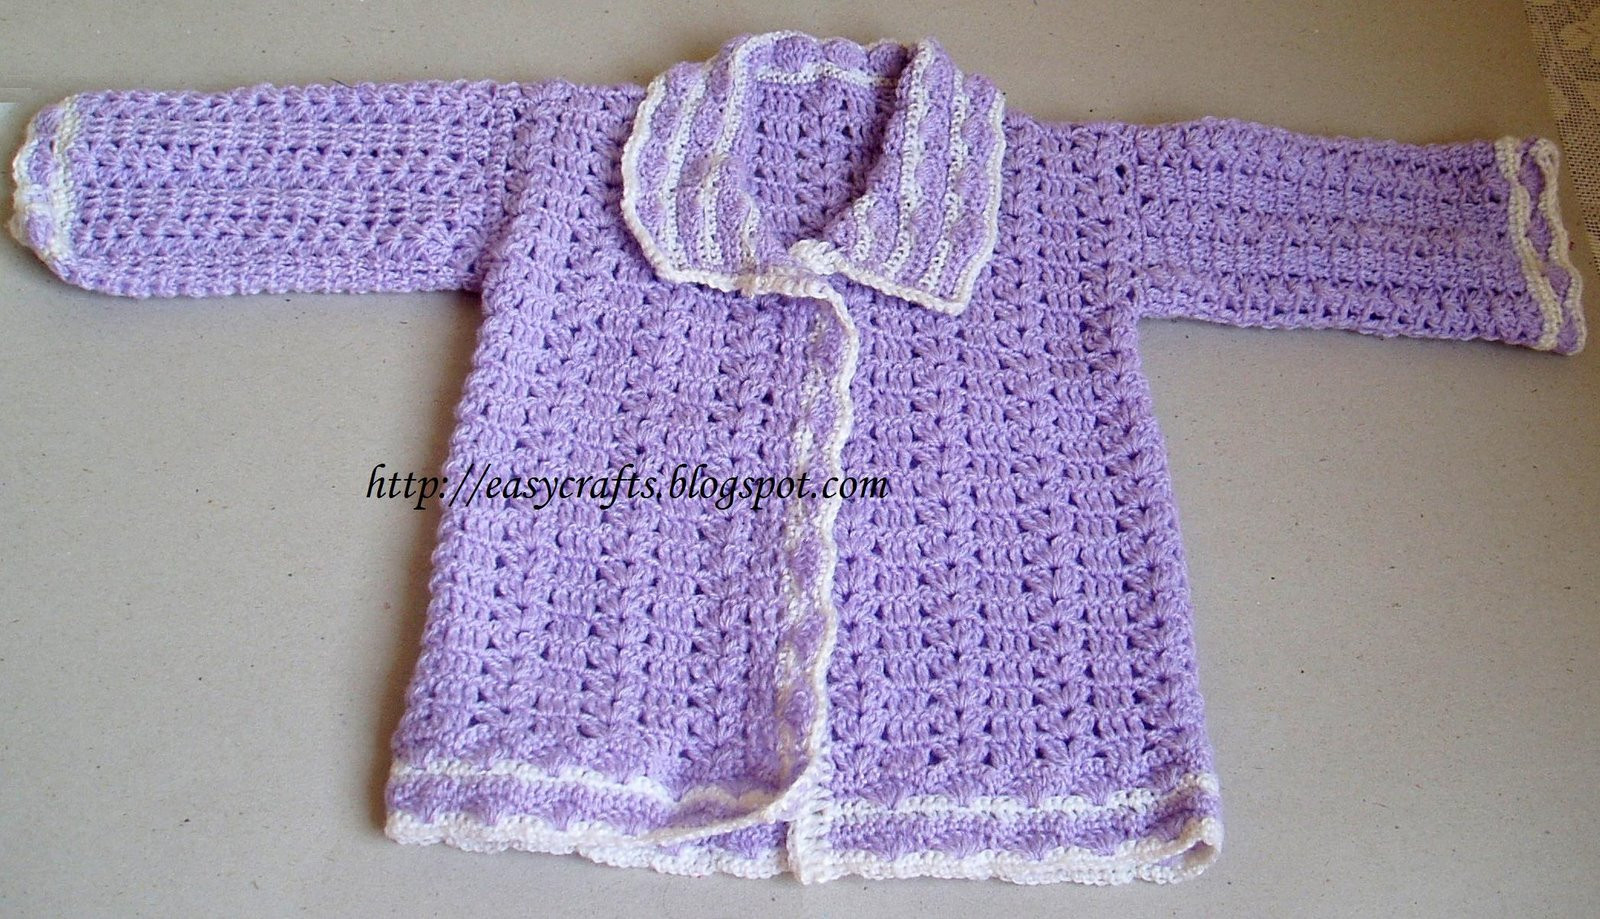 Easy Crochet Baby Sweater Lovely Easy Crafts Explore Your Creativity March 2009 Of Gorgeous 42 Models Easy Crochet Baby Sweater